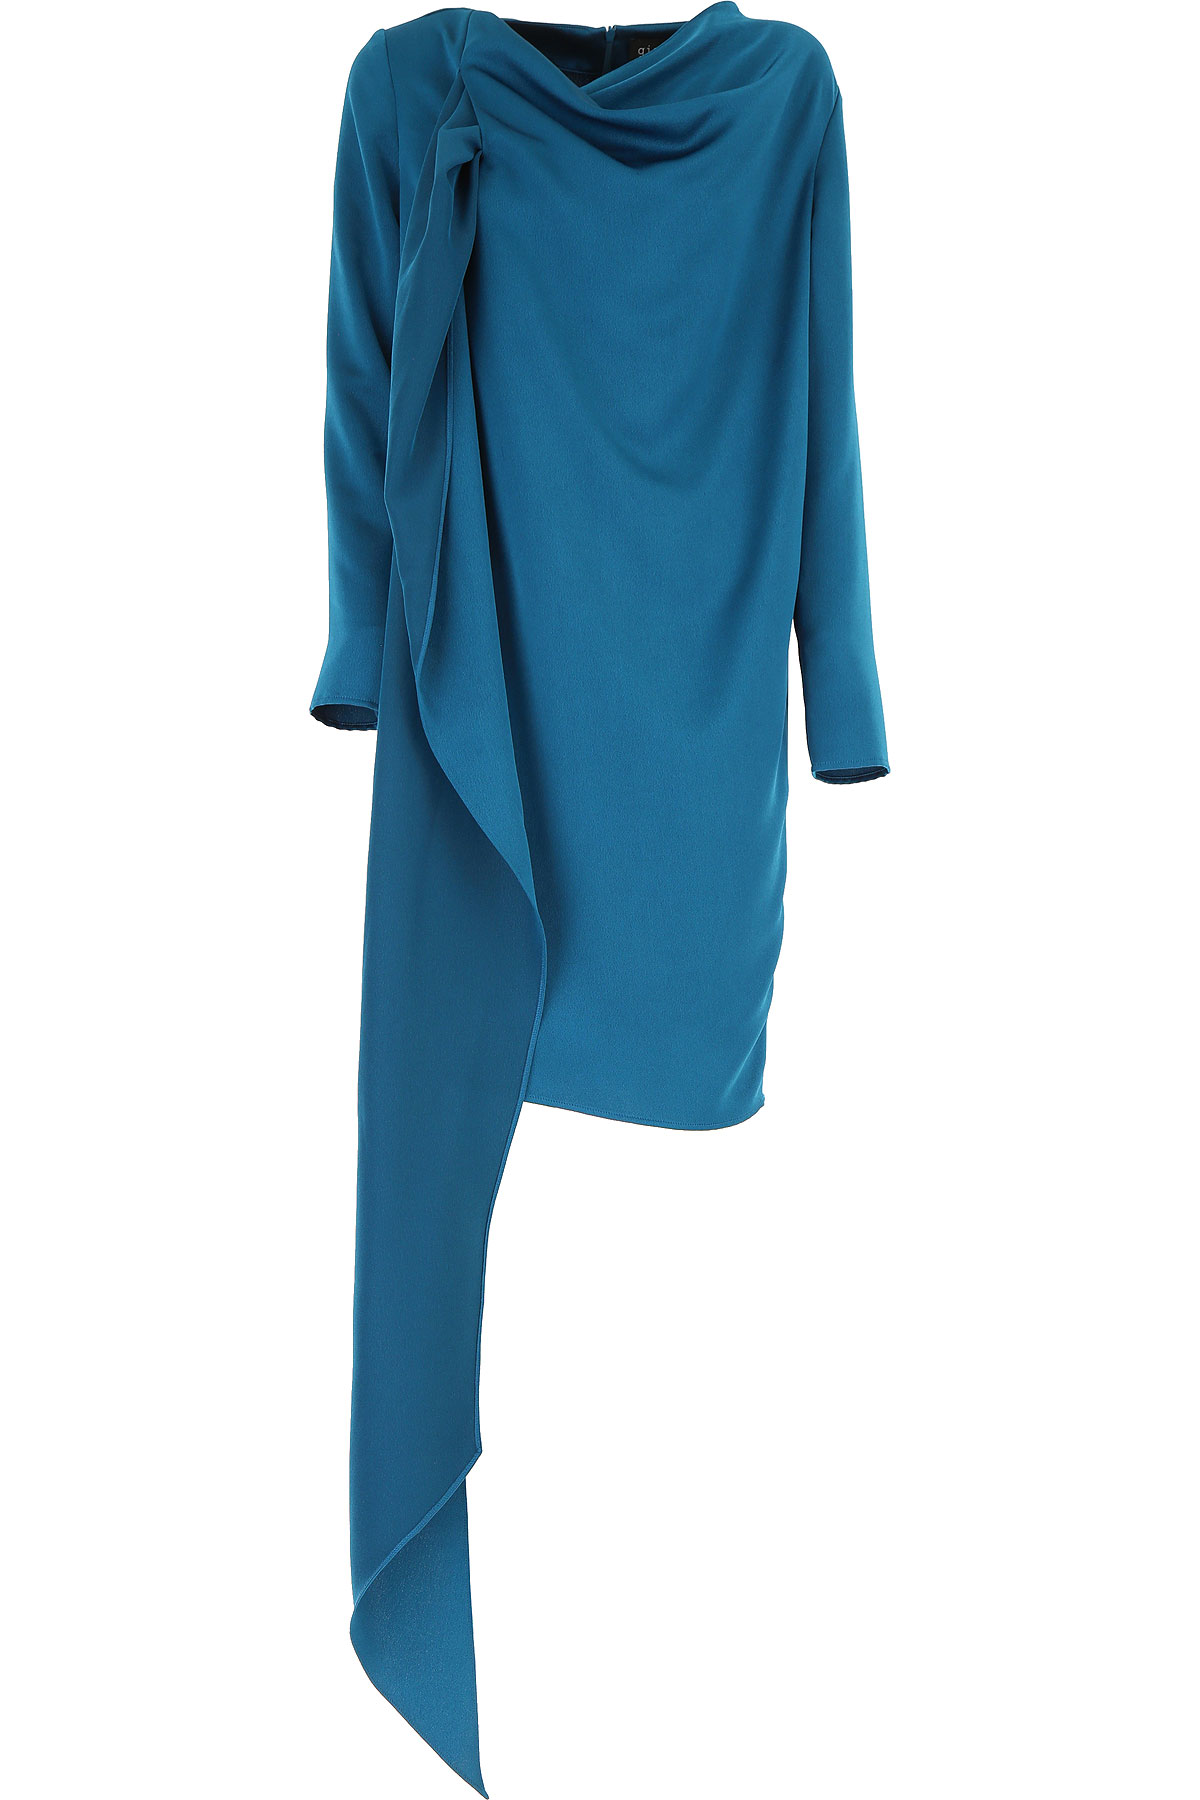 Gianluca Capannolo Dress for Women, Evening Cocktail Party On Sale, Petrol, polyester, 2019, 10 6 8